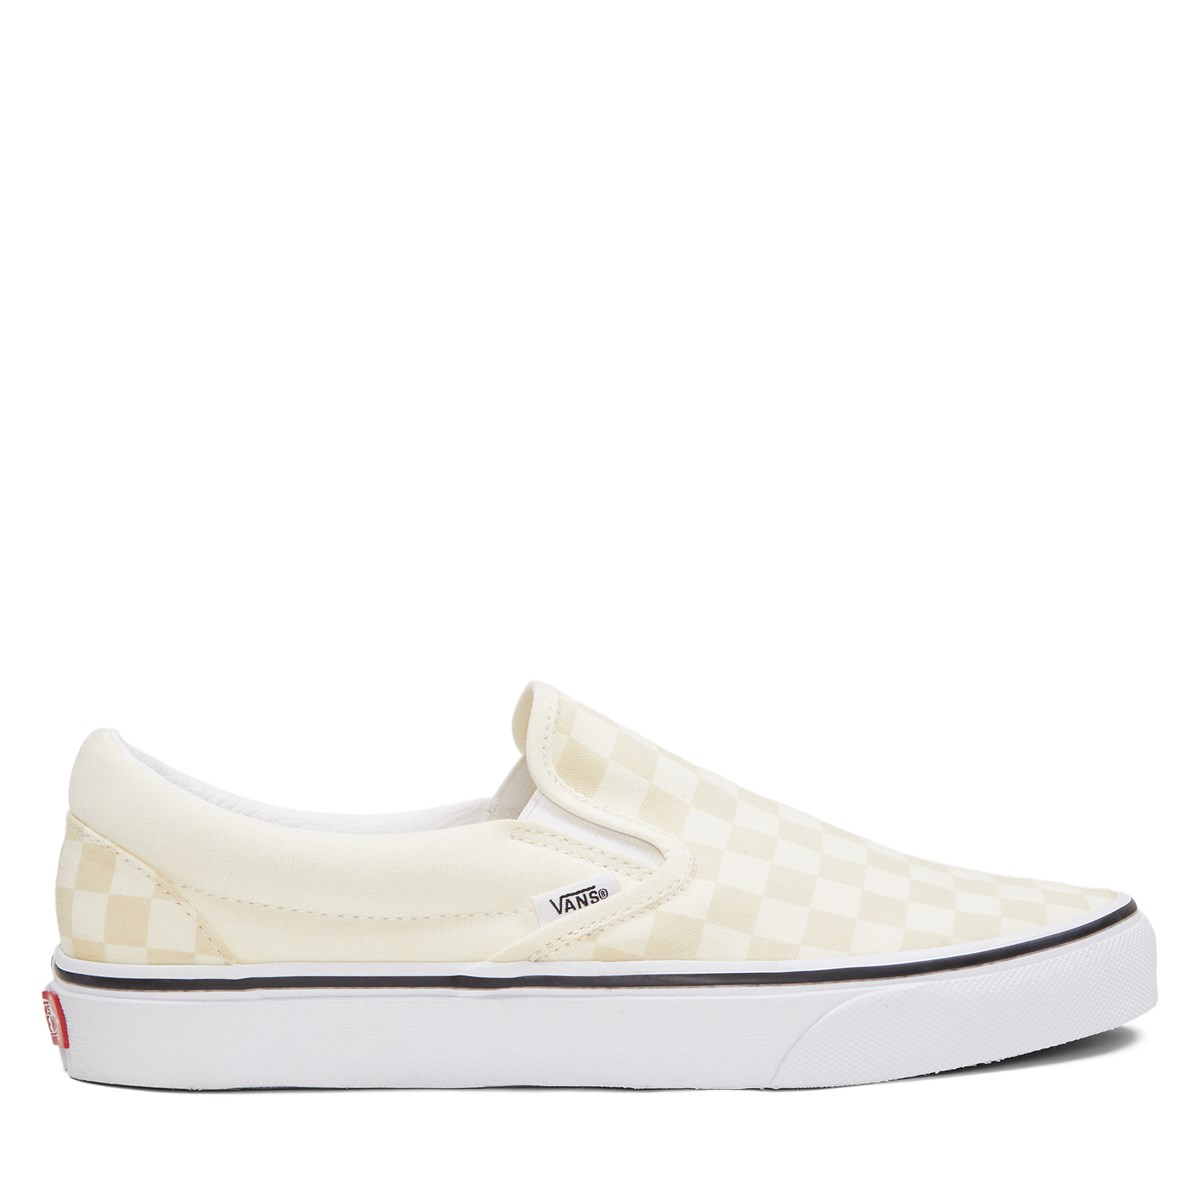 Women's Classic Checkerboard Slip-Ons in Light Yellow